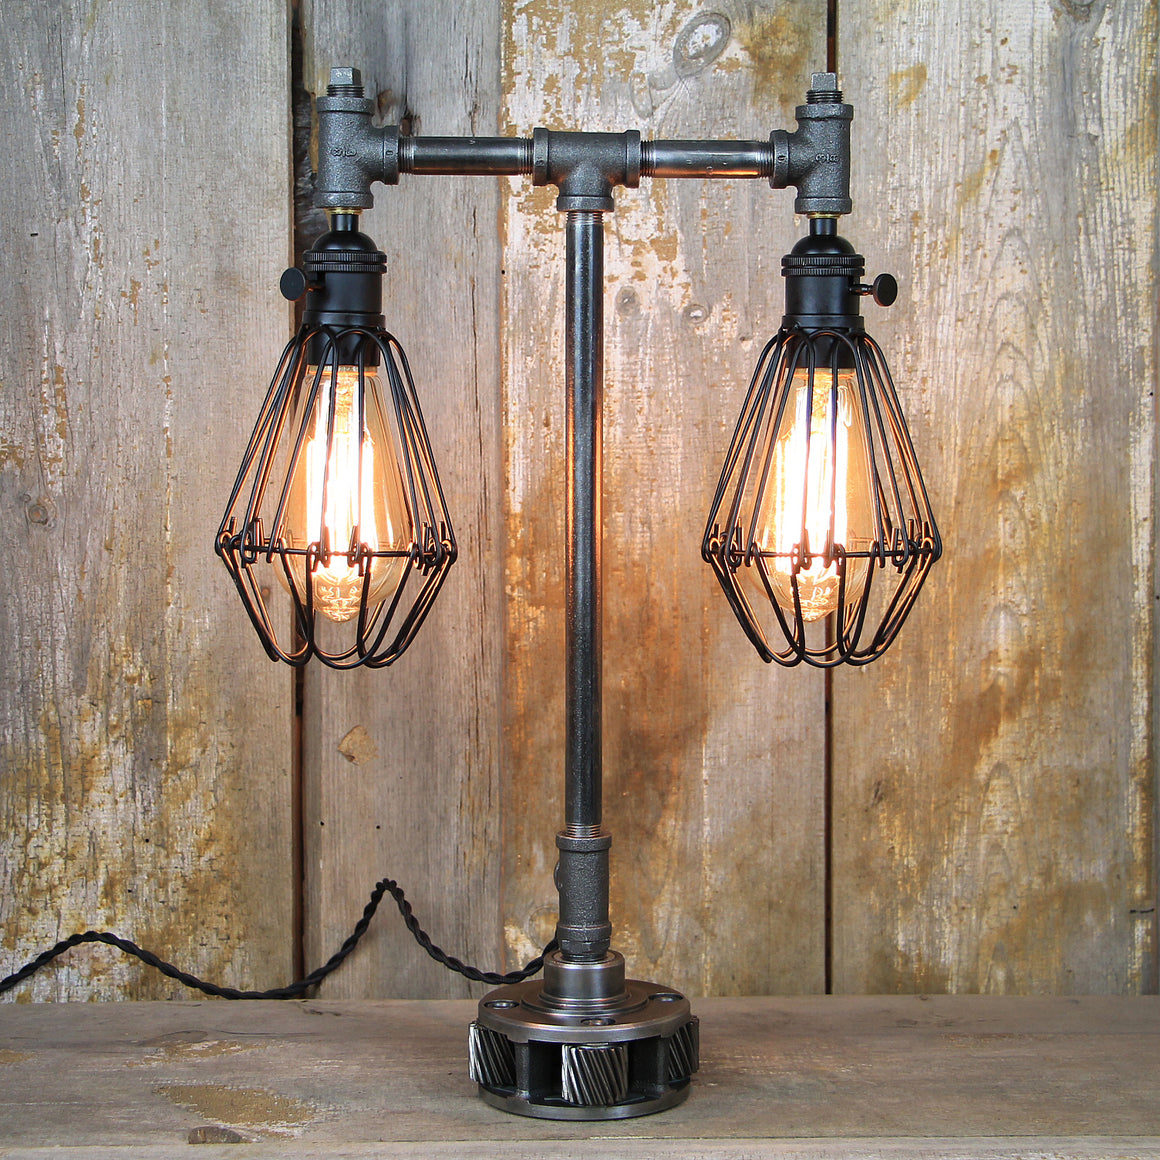 Steampunk Table Lamp with Dual Edison Lights - Steampunk Desk Lamp #92 - The Lighting Works